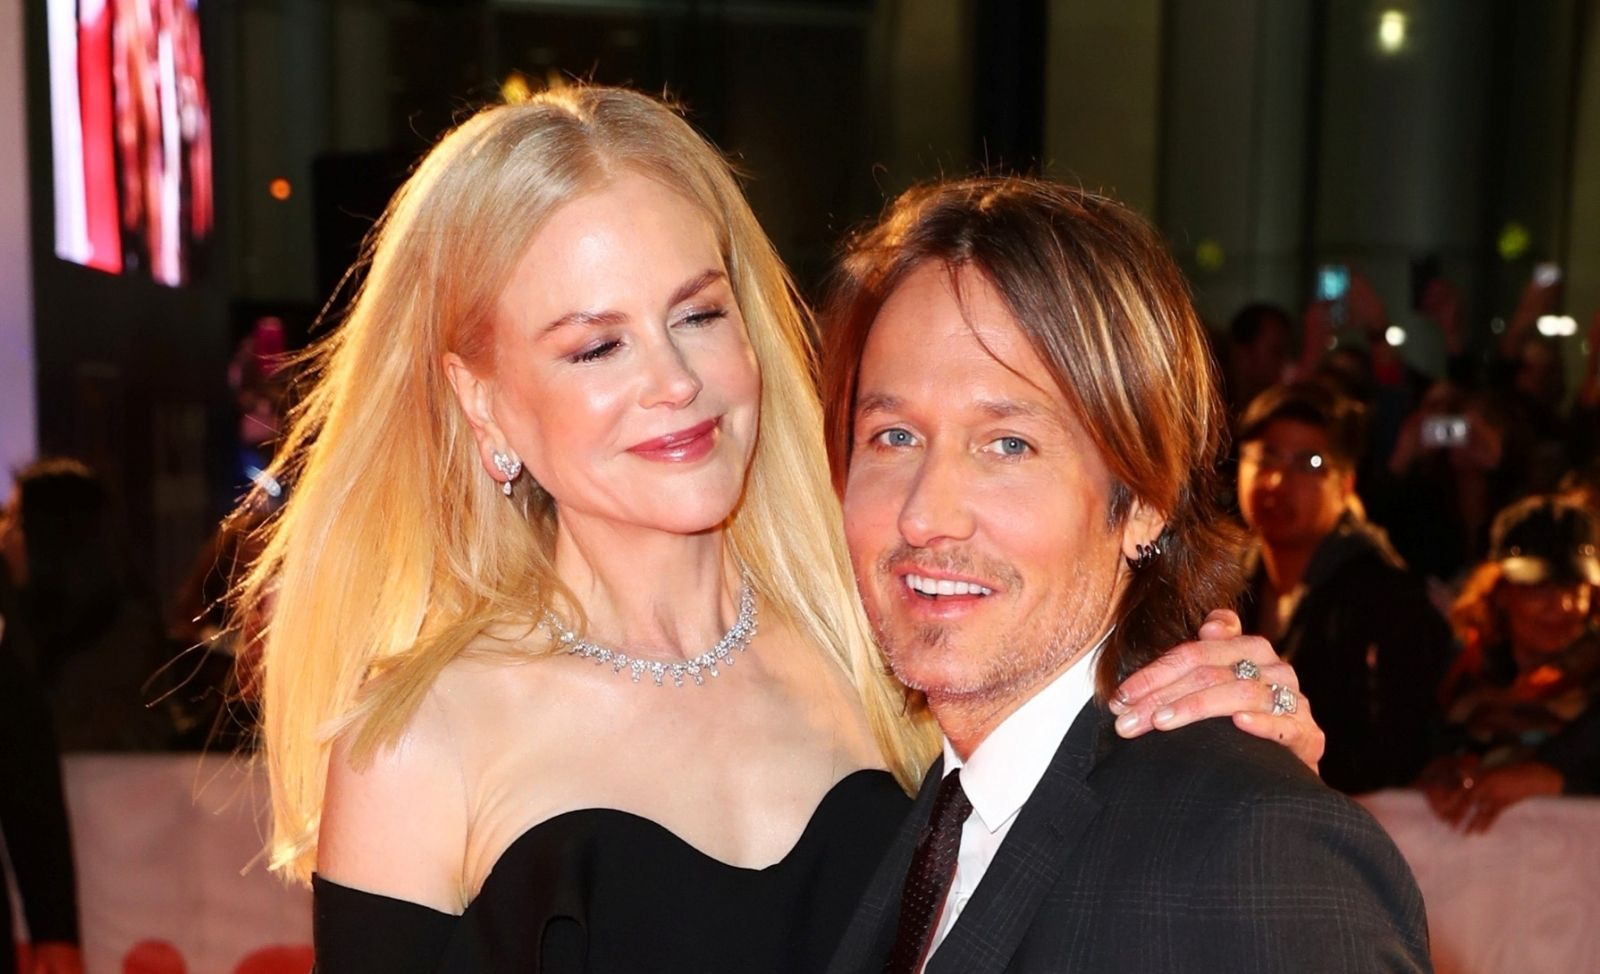 Kidman and Urban tied the knot in 2006.